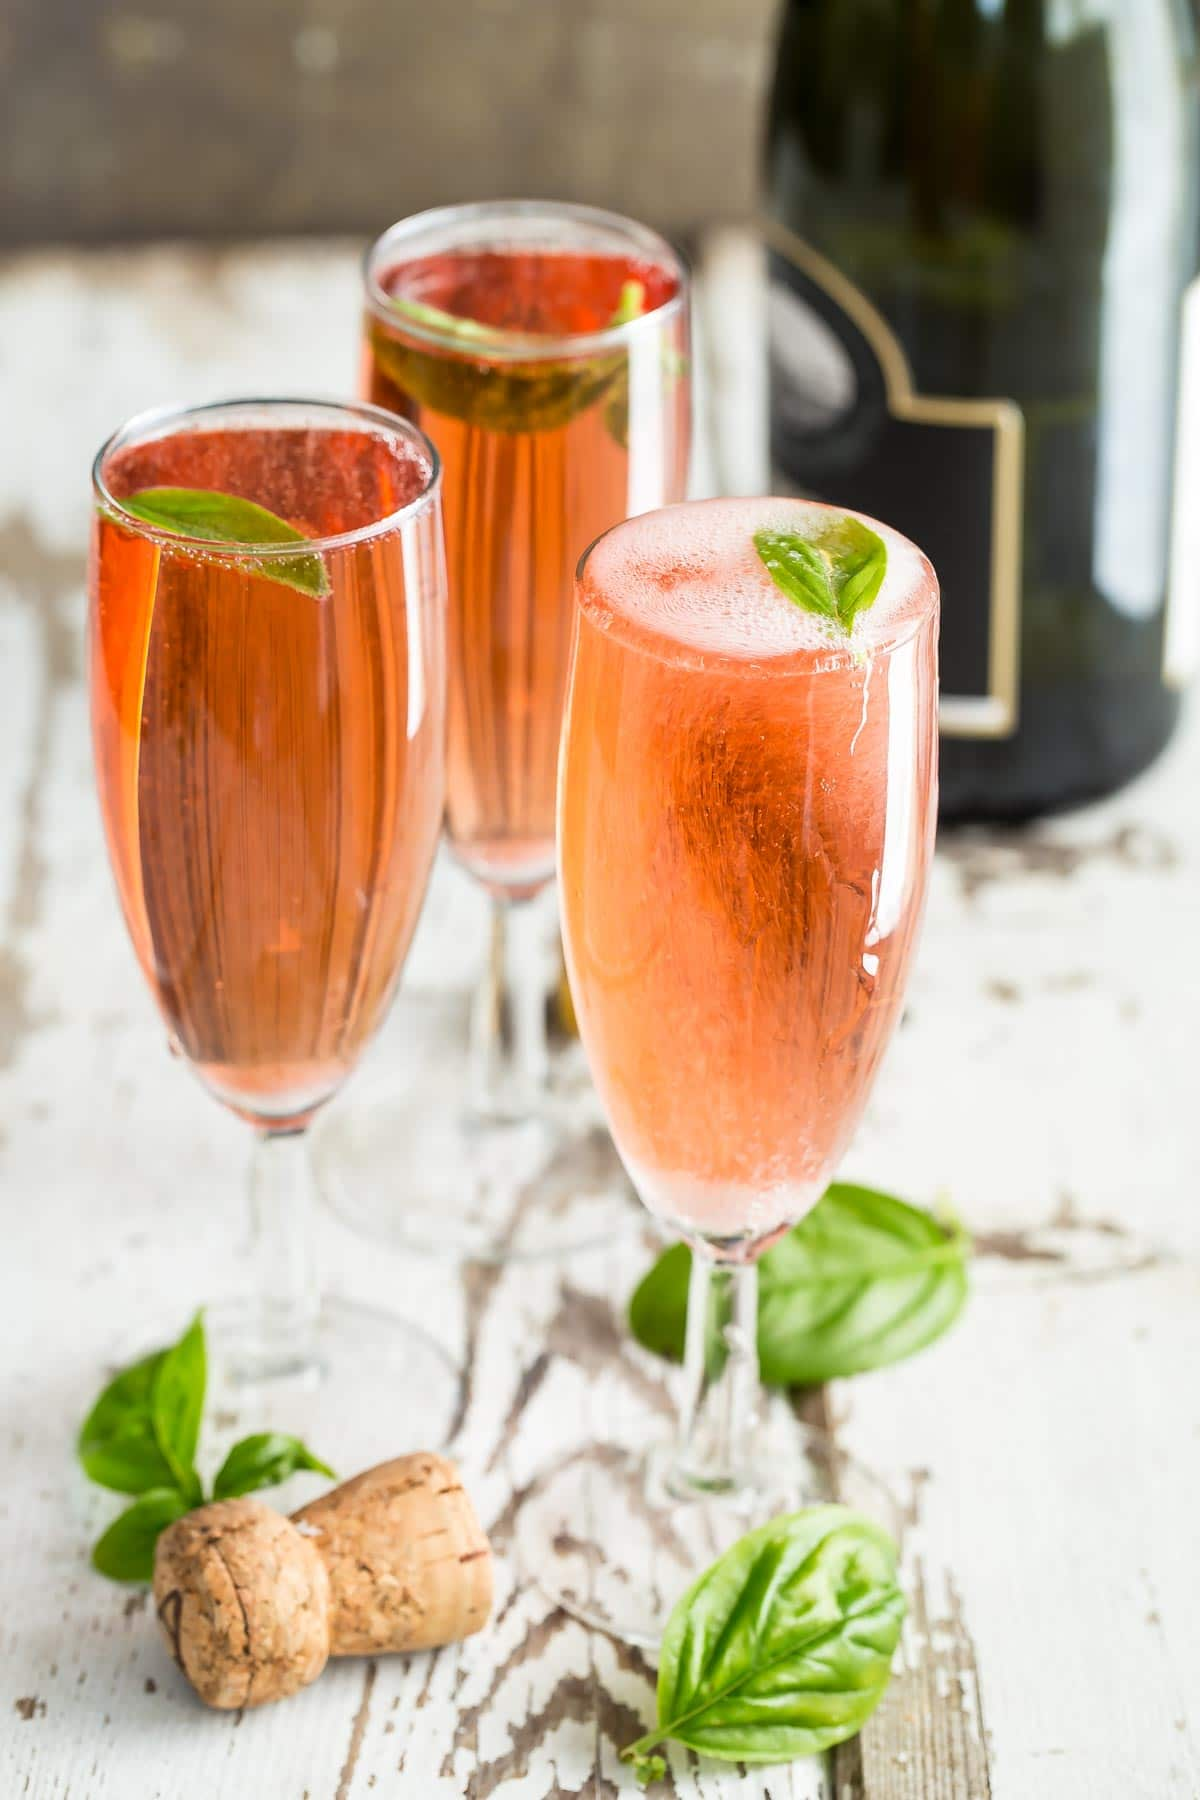 These Pomegranate Mimosas are fun and fizzy with a touch of fresh basil and triple sec. The perfect way to do brunch or celebrate the New Year!